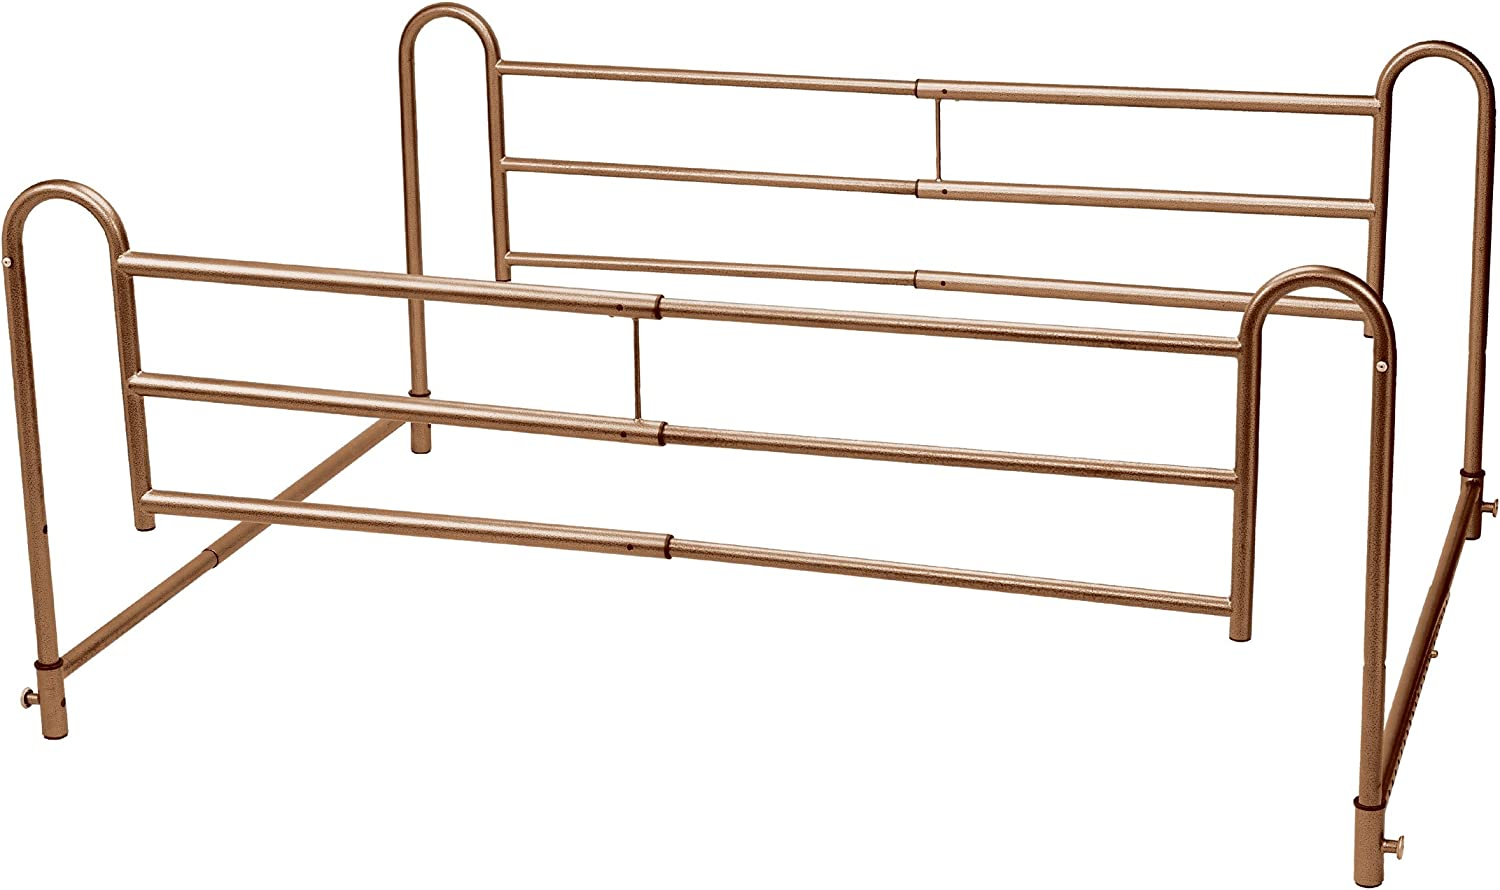 Drive Medical Home Bed Style Adjustable Length Bed Rails, Brown Vein: Health & Personal Care